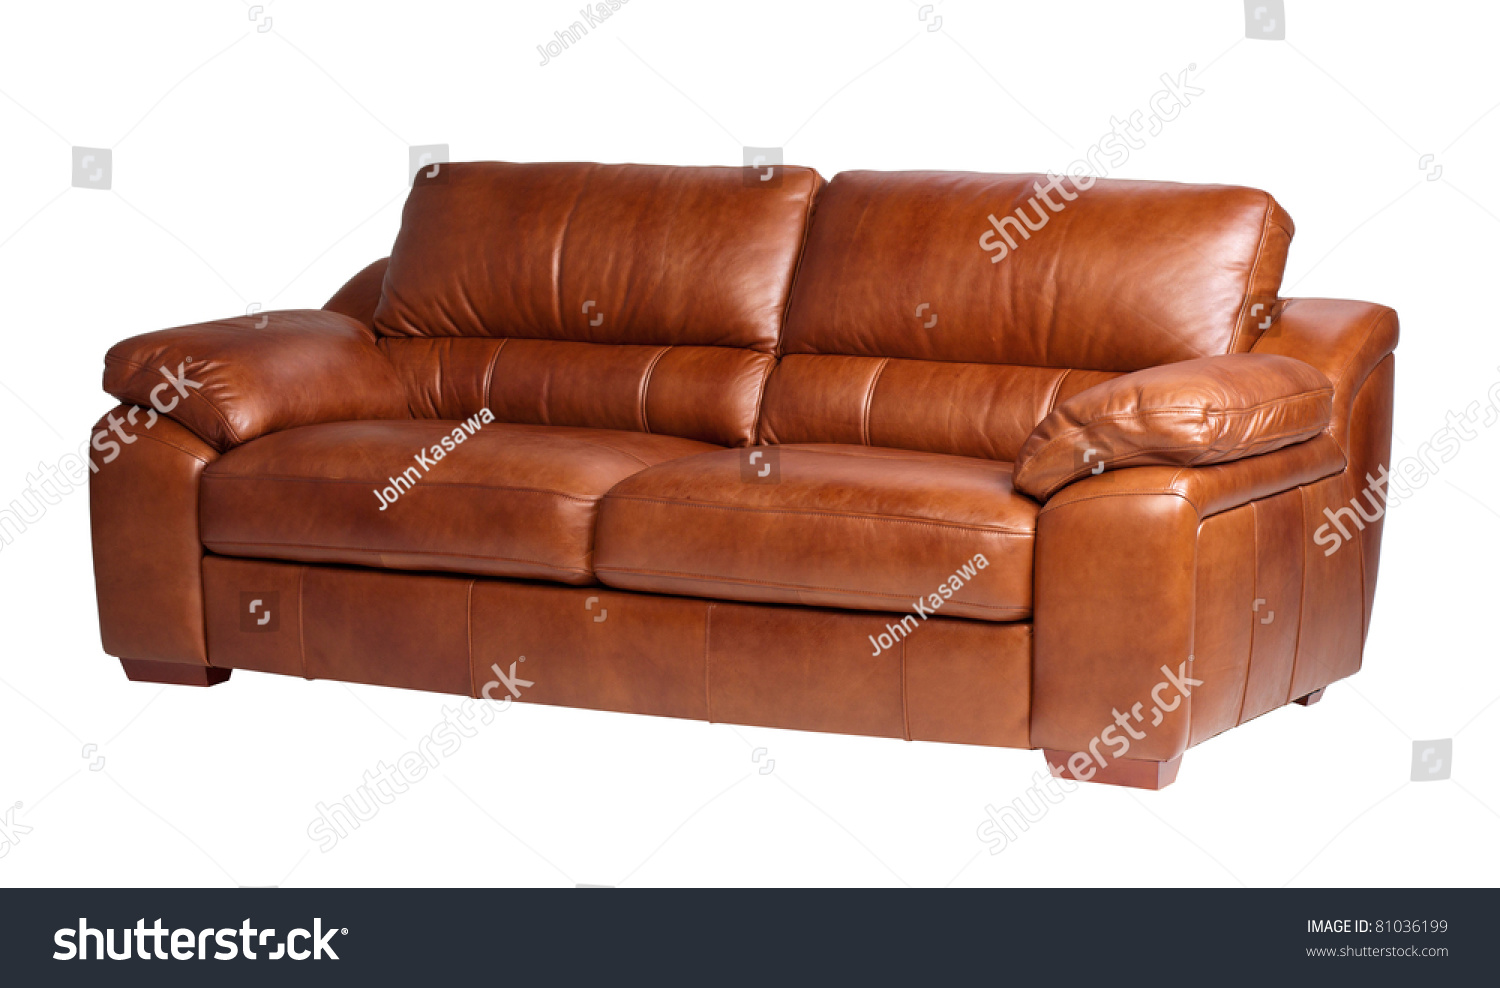 Nice And Luxury Leather Sofa The Great Leather Furniture